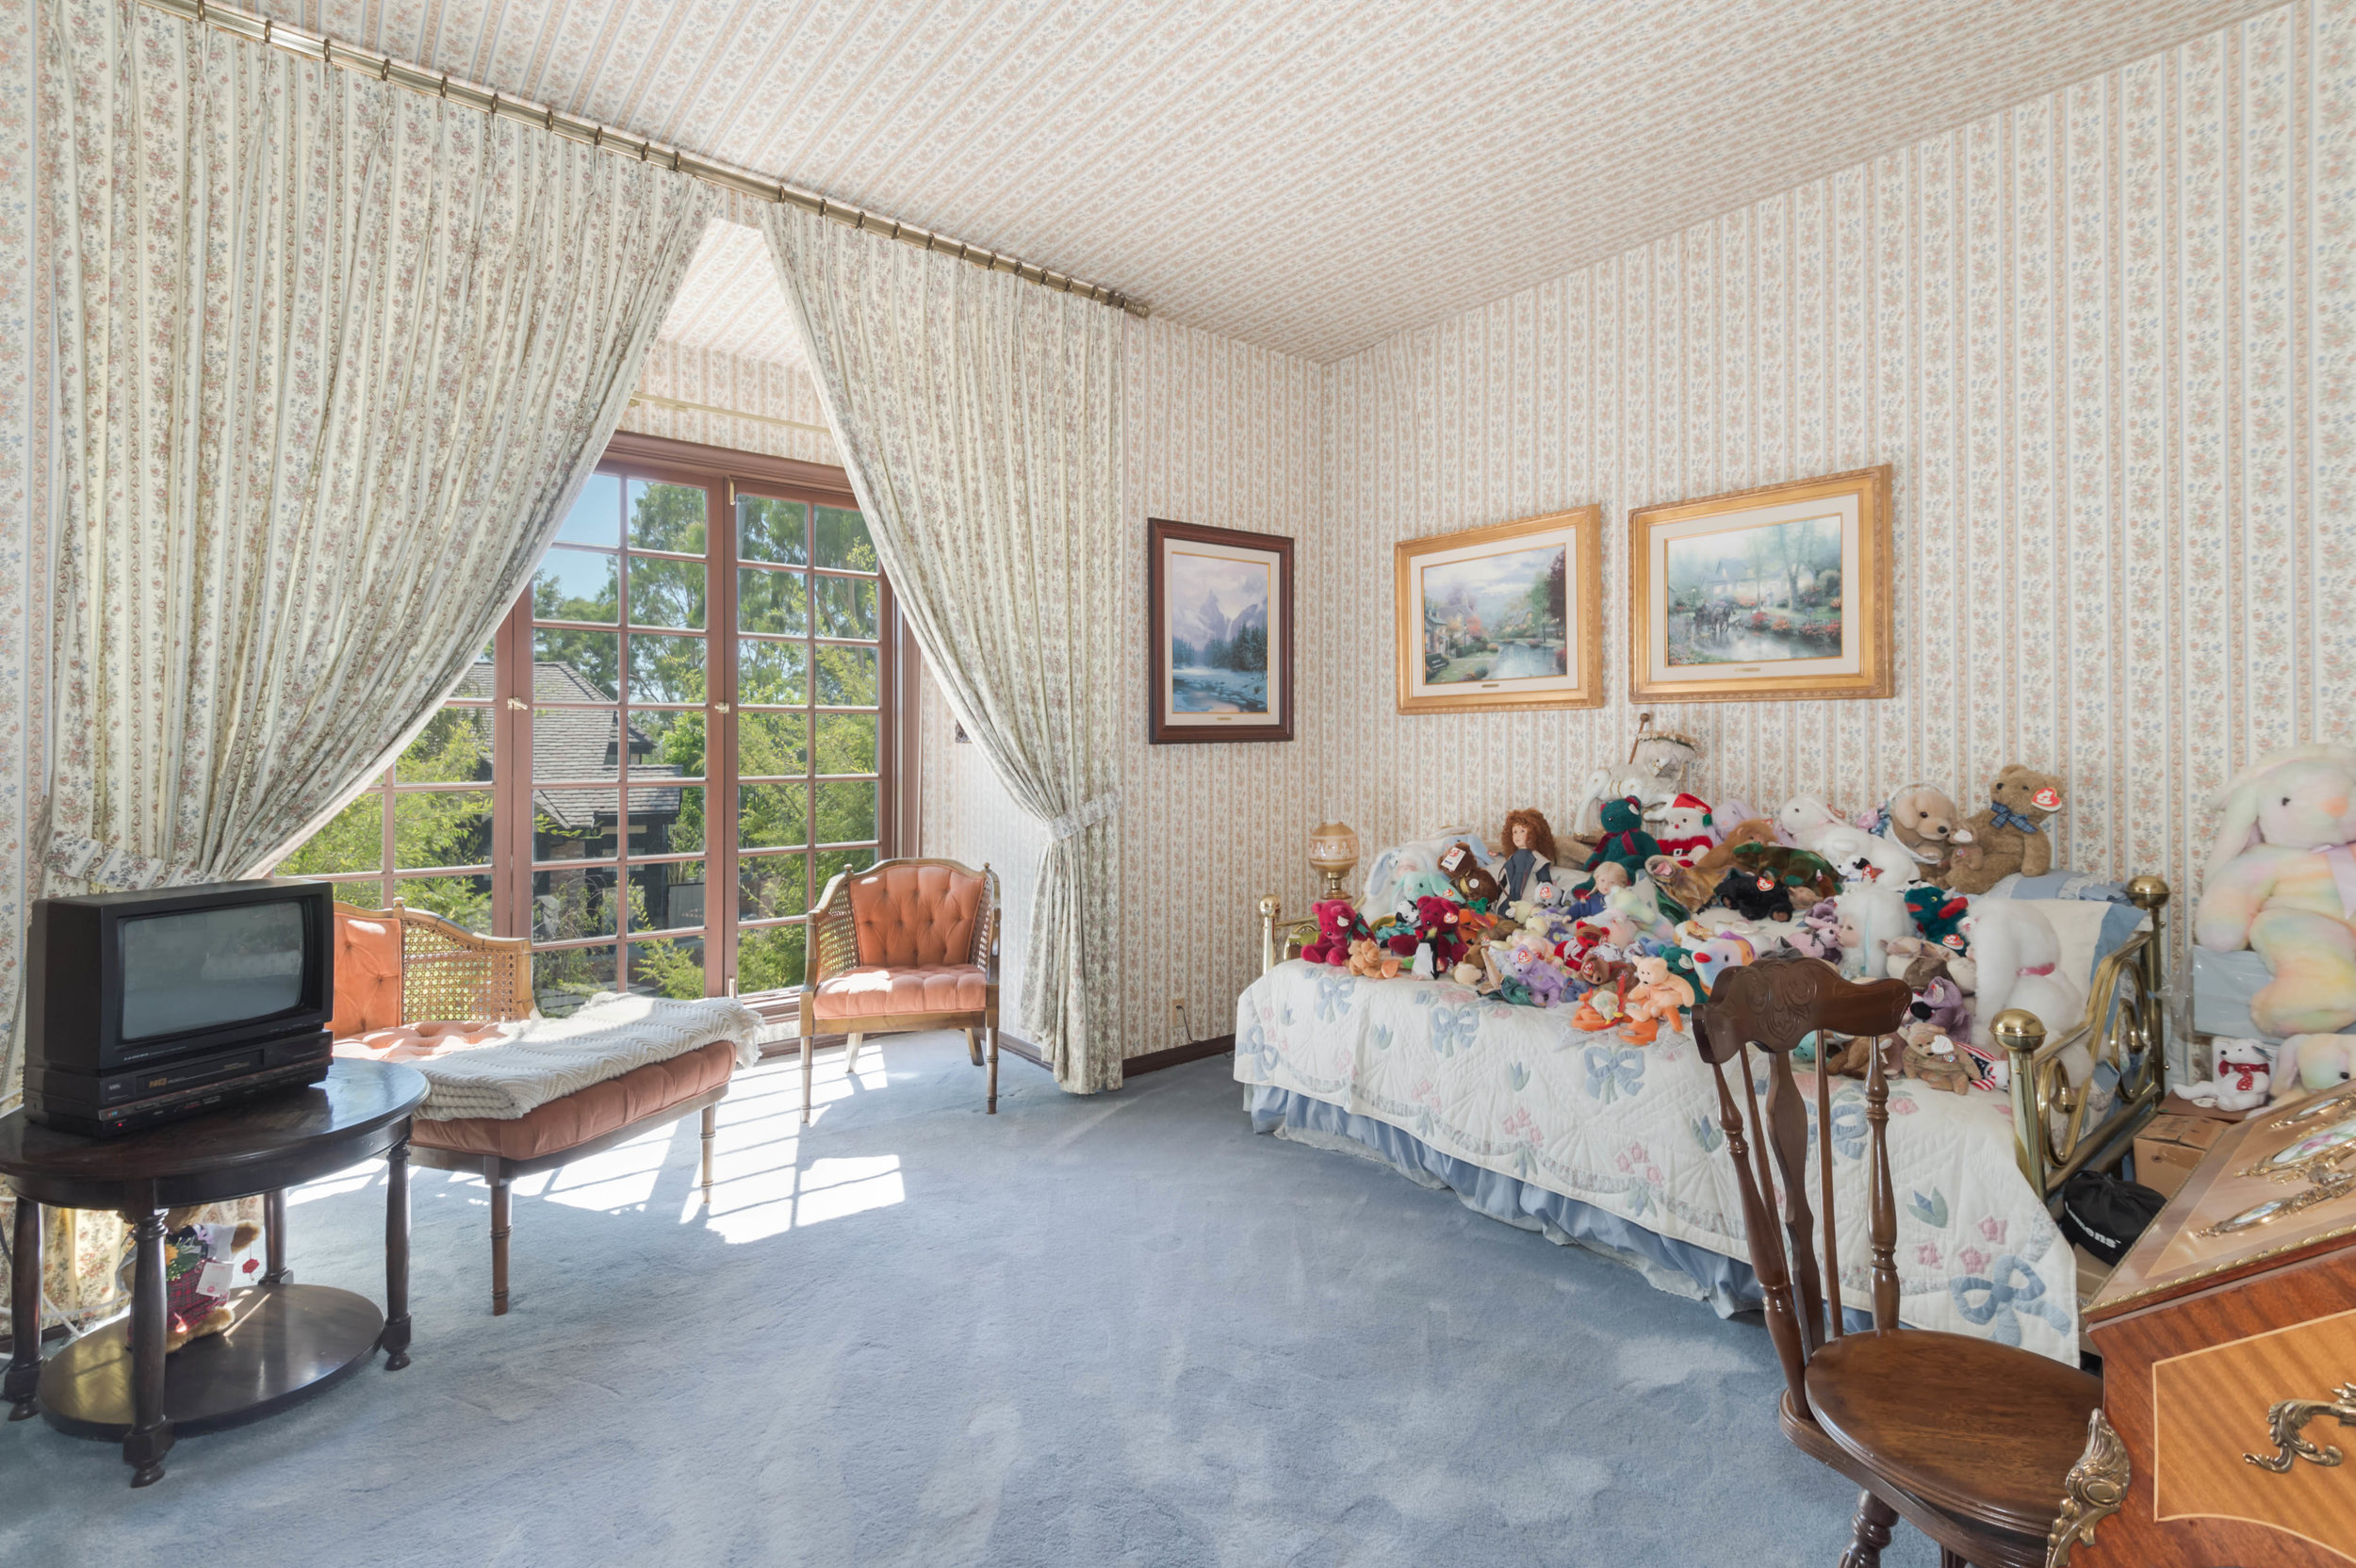 013 Bedroom 3191 Toppington Drive Beverly Hills For Sale Lease The Malibu Life Team Luxury Real Estate.jpg